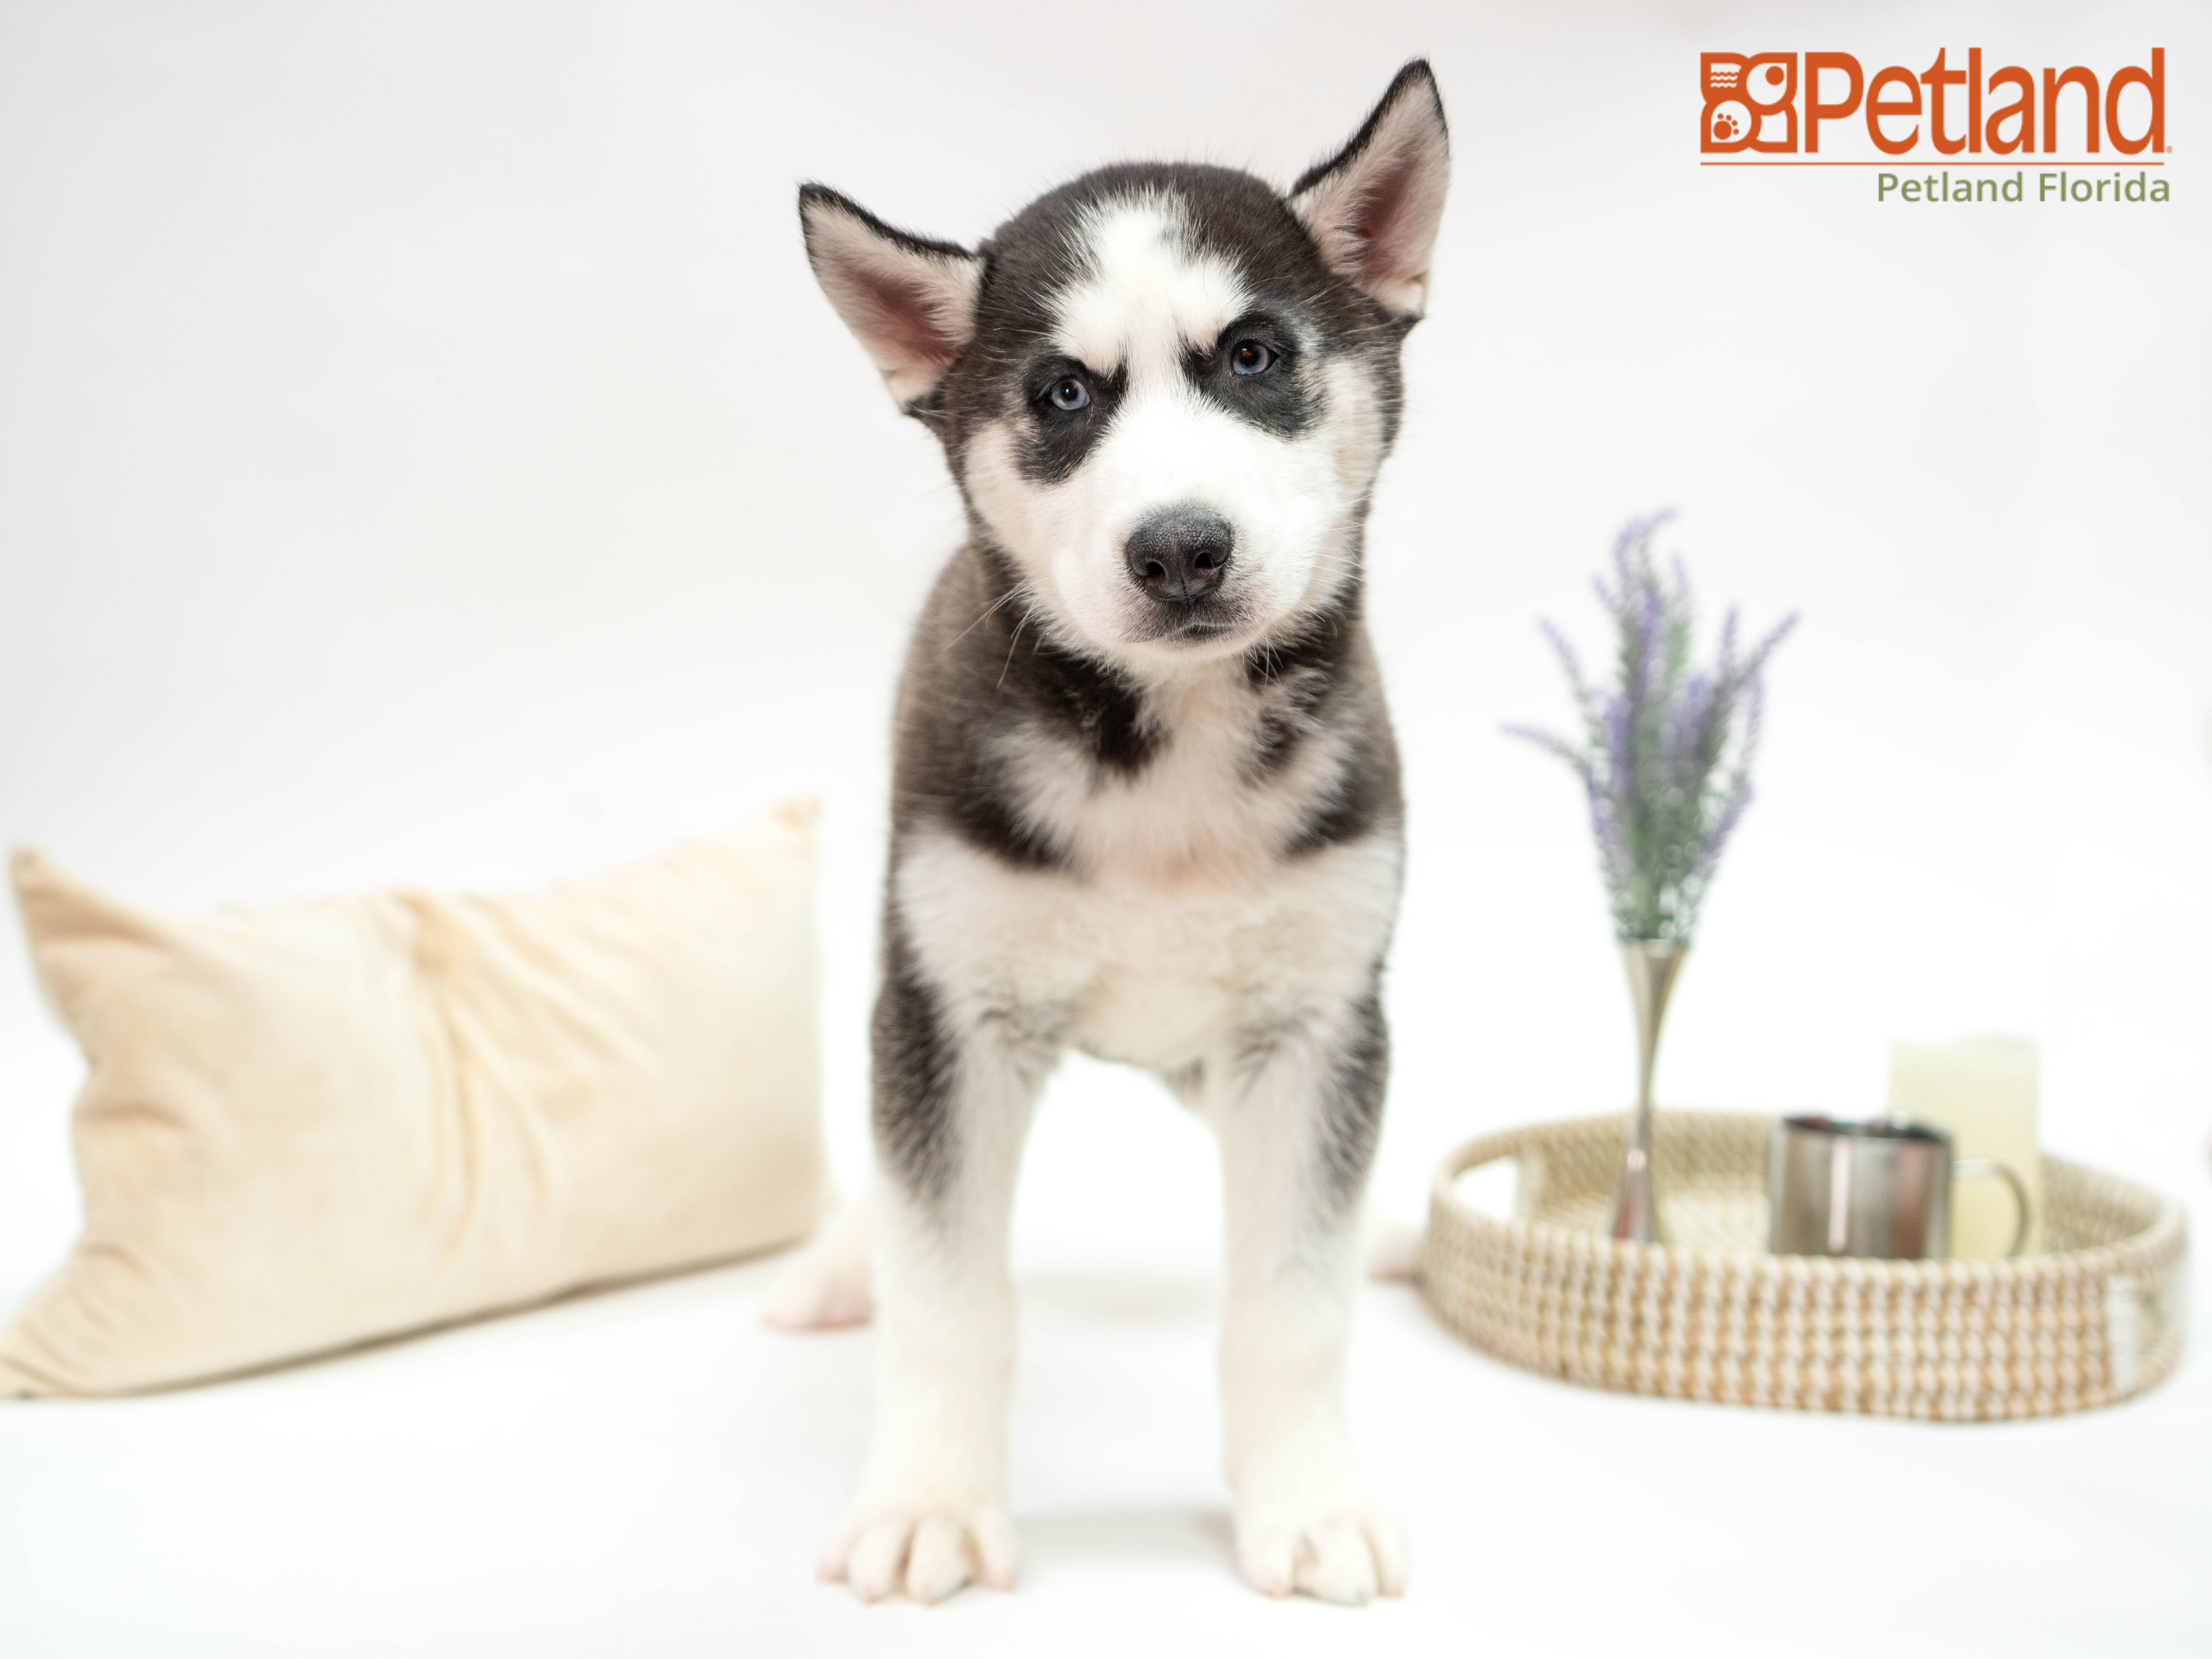 Puppies For Sale Husky puppies for sale, Dog lovers, Puppies